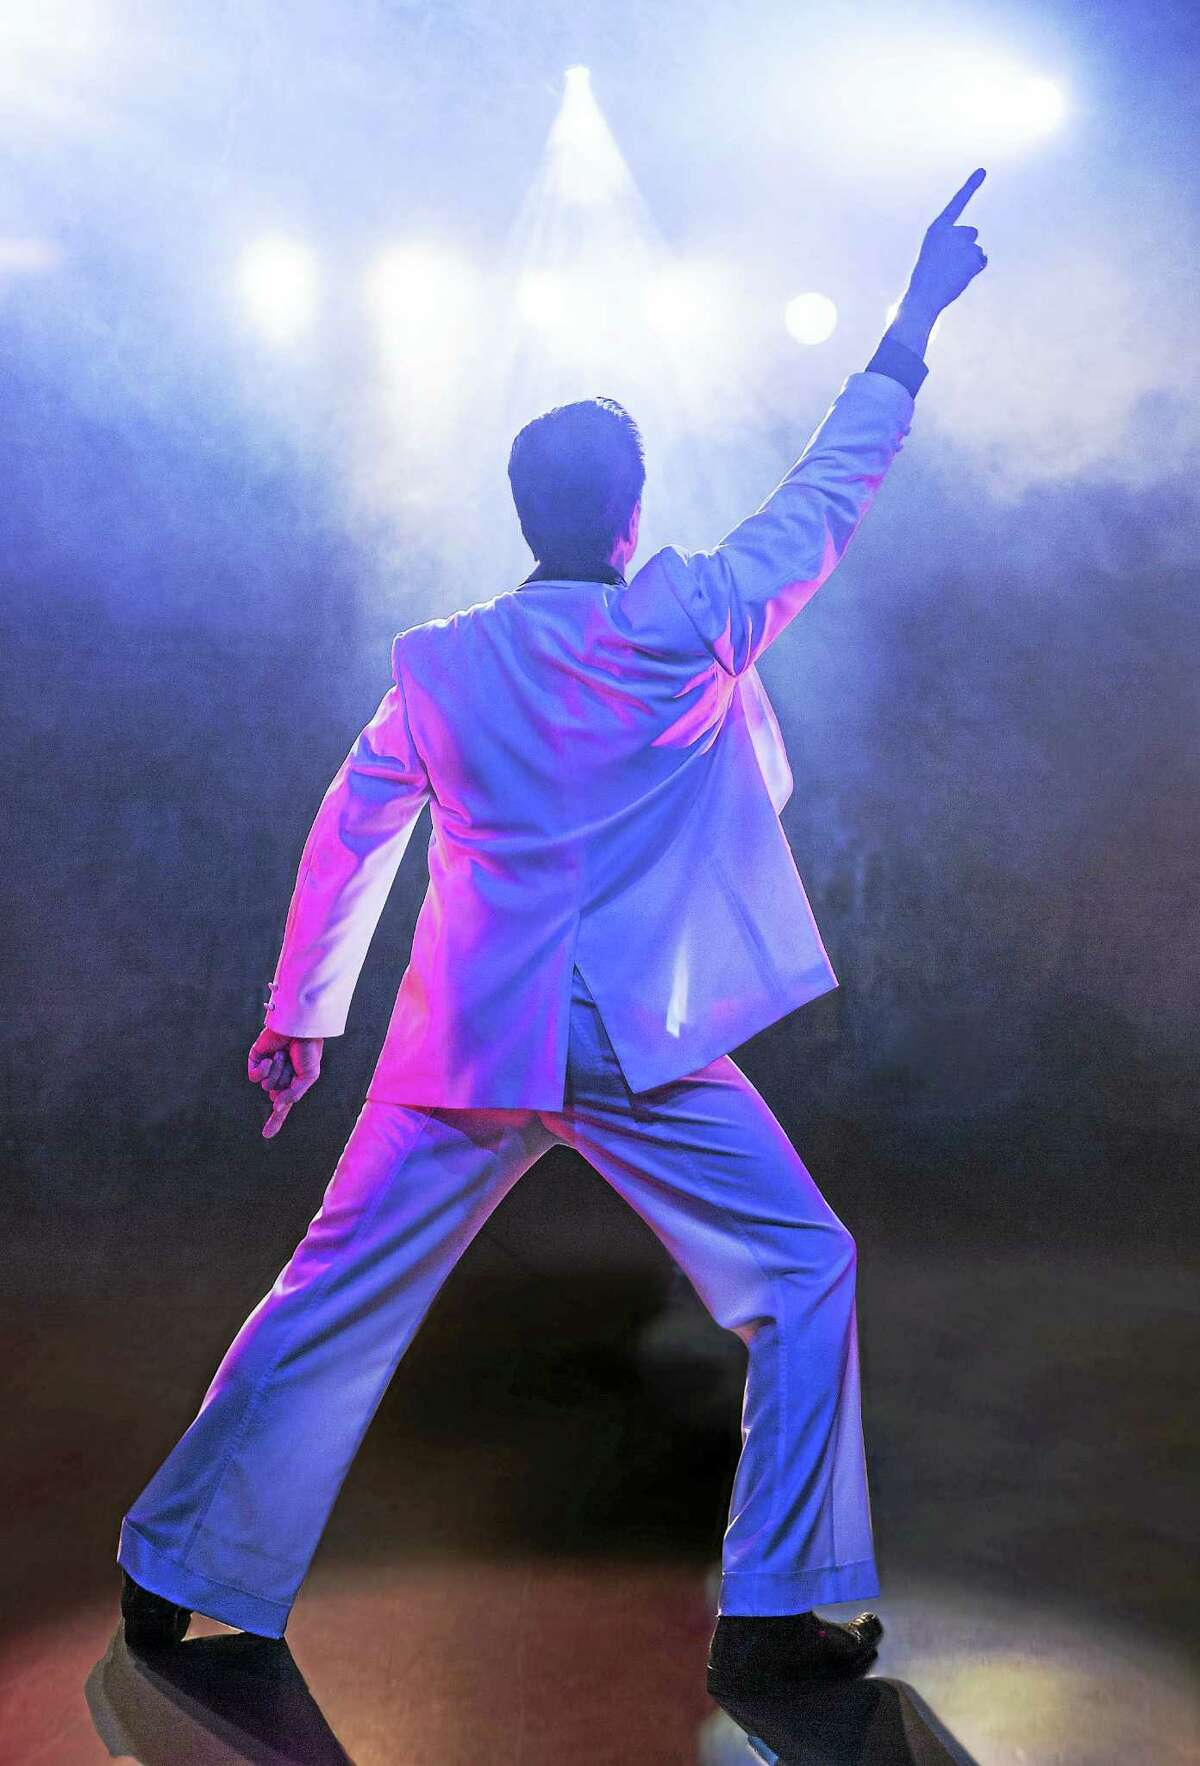 Photography by ©Erin O'Boyle PhotographicsSaturday Night Fever takes the Palace Theater stage later in February.